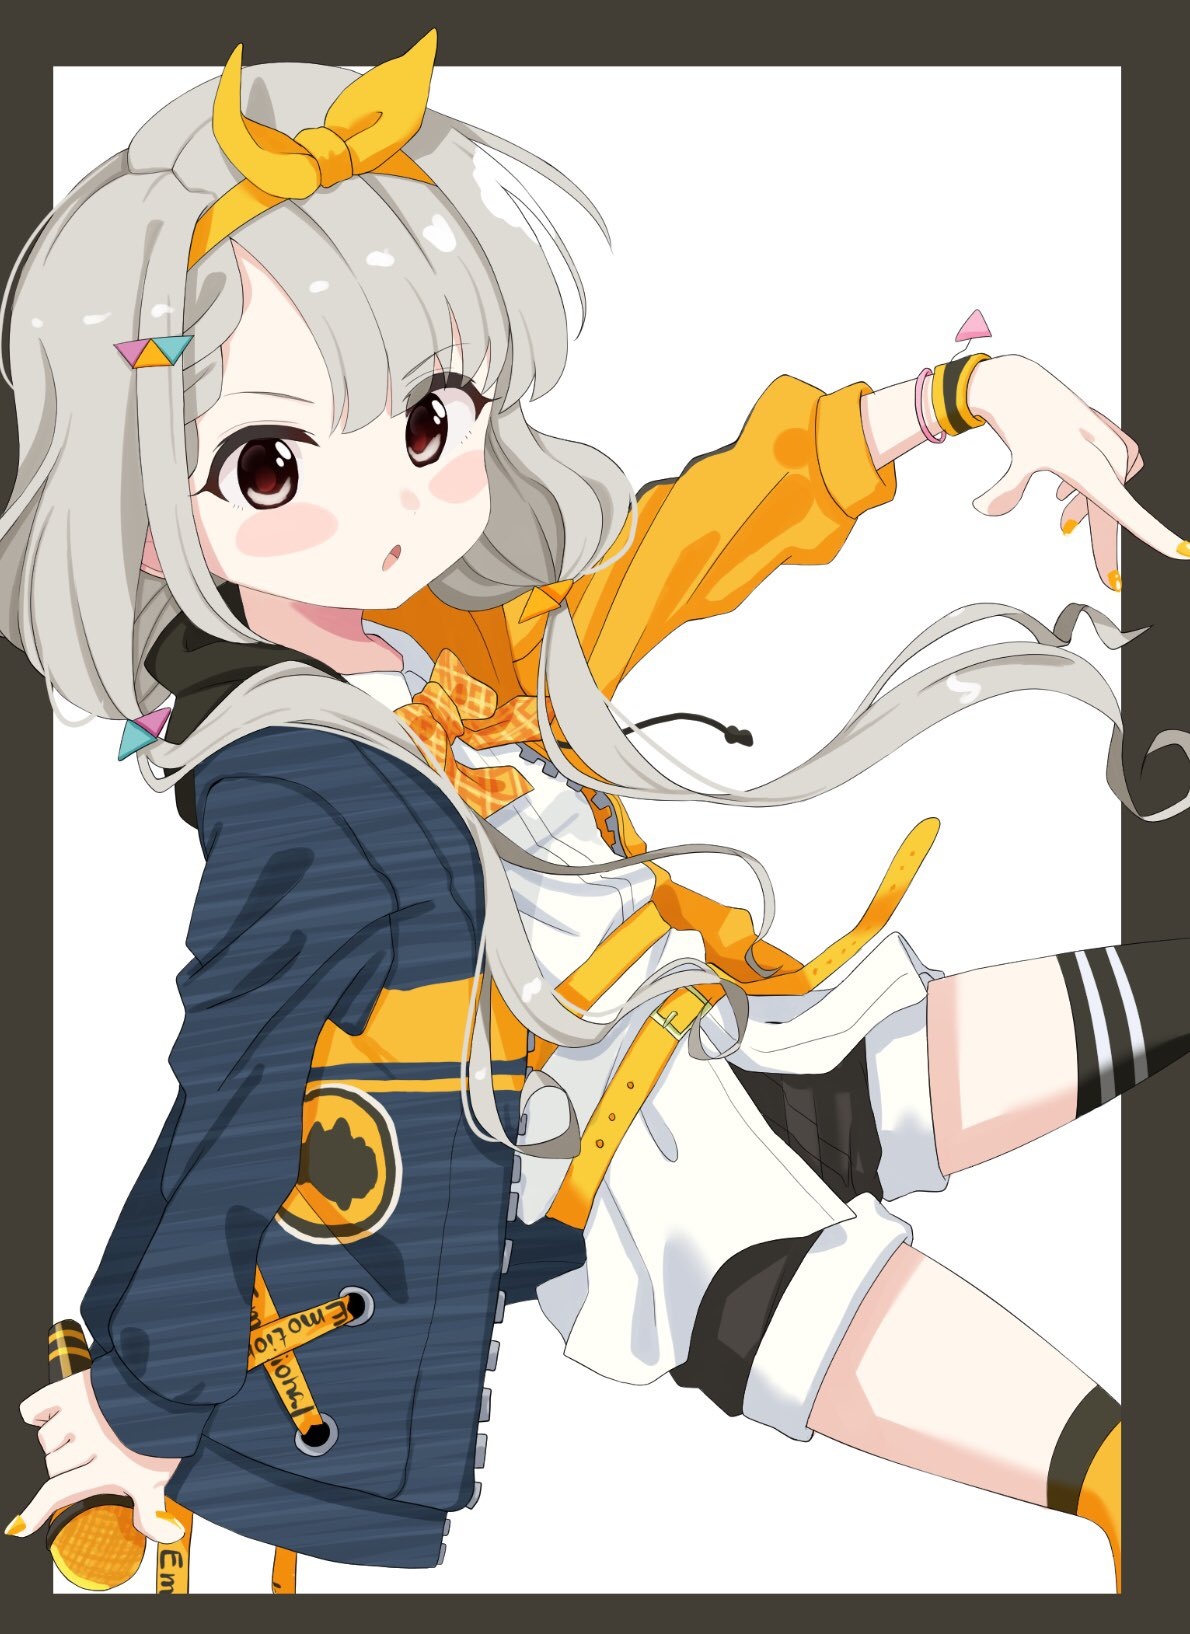 1girl bangs belt belt_buckle black_background black_legwear black_shorts blue_jacket blush_stickers bow brown_eyes buckle collared_shirt commentary_request dress_shirt eyebrows_visible_through_hair hair_ornament hair_ribbon highres hisakawa_nagi holding holding_microphone idolmaster idolmaster_cinderella_girls idolmaster_cinderella_girls_starlight_stage jacket long_hair long_sleeves low_twintails microphone mismatched_legwear nail_polish open_clothes open_jacket orange_belt orange_bow orange_jacket orange_legwear orange_nails orange_ribbon outstretched_arm over-kneehighs parted_lips plaid plaid_bow ribbon shirt shiwa_(siwaa0419) short_shorts shorts single_over-kneehigh single_thighhigh sleeves_past_wrists solo thigh-highs twintails two-tone_background v-shaped_eyebrows very_long_hair white_background white_shirt wristband